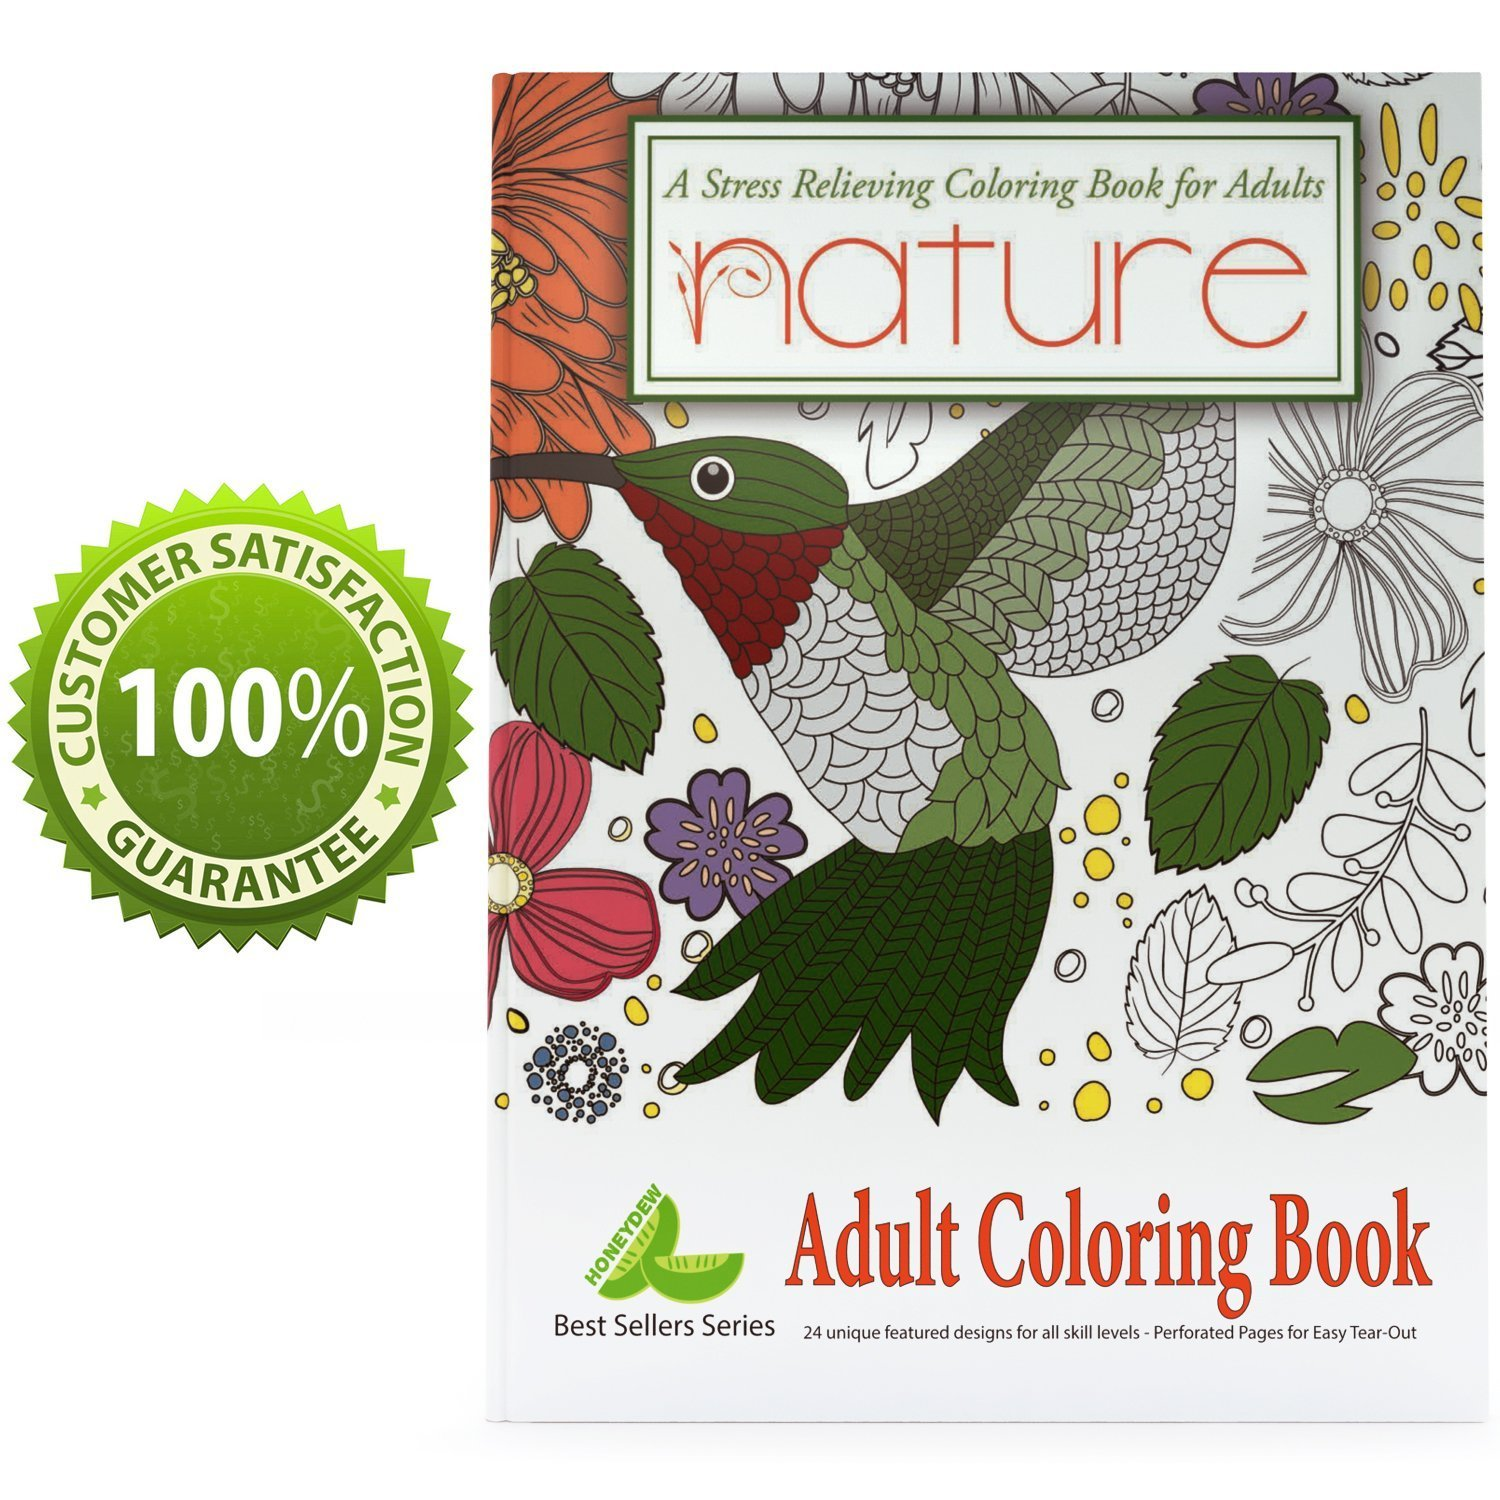 Amazon.com: Adult Coloring Book with Animal Pictures and Beginners ...